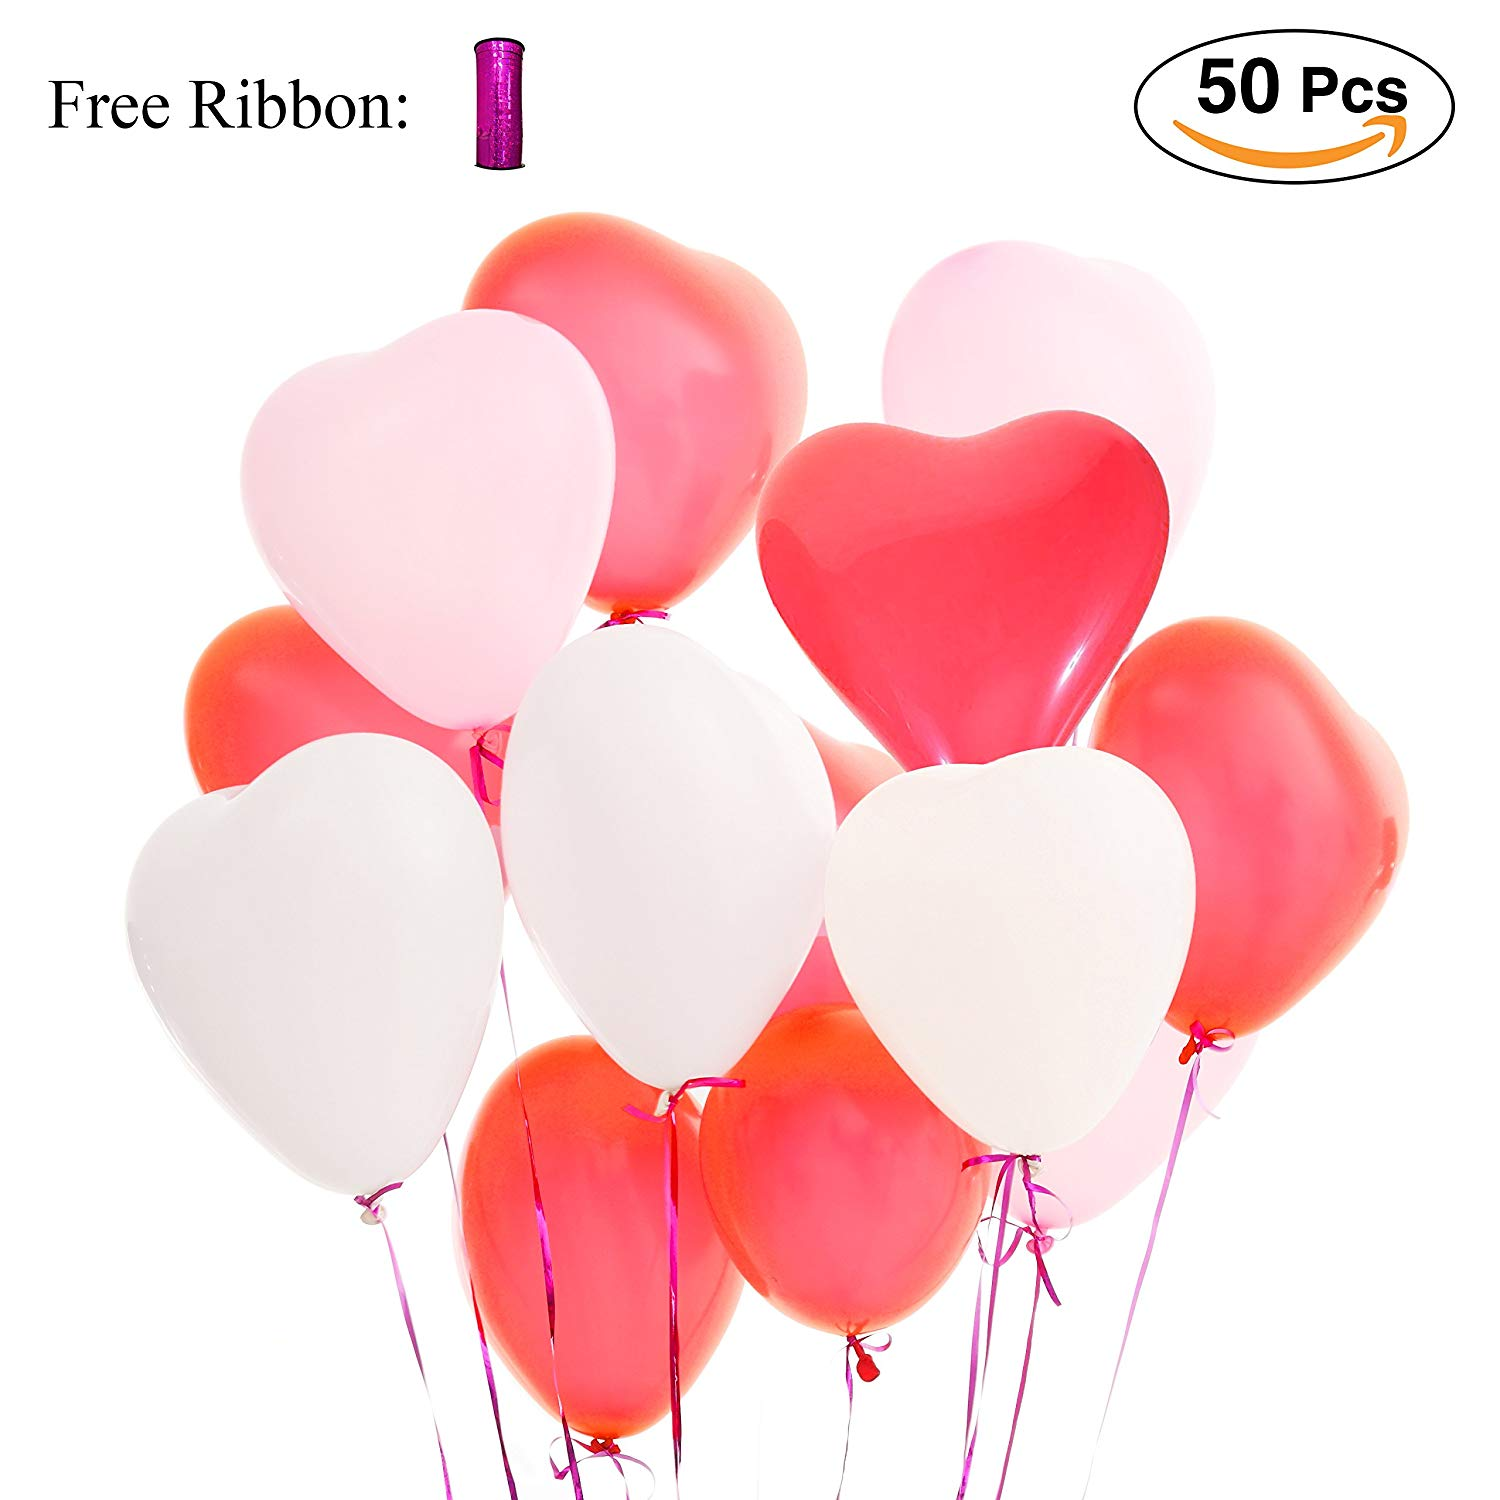 LAttLiv Valentines Day Balloons 50 Packs Heart Balloons 12 inch Latex Balloons for Wedding Decoration Birthday Decoration or Anniversary Decoration - Pink/White/Red